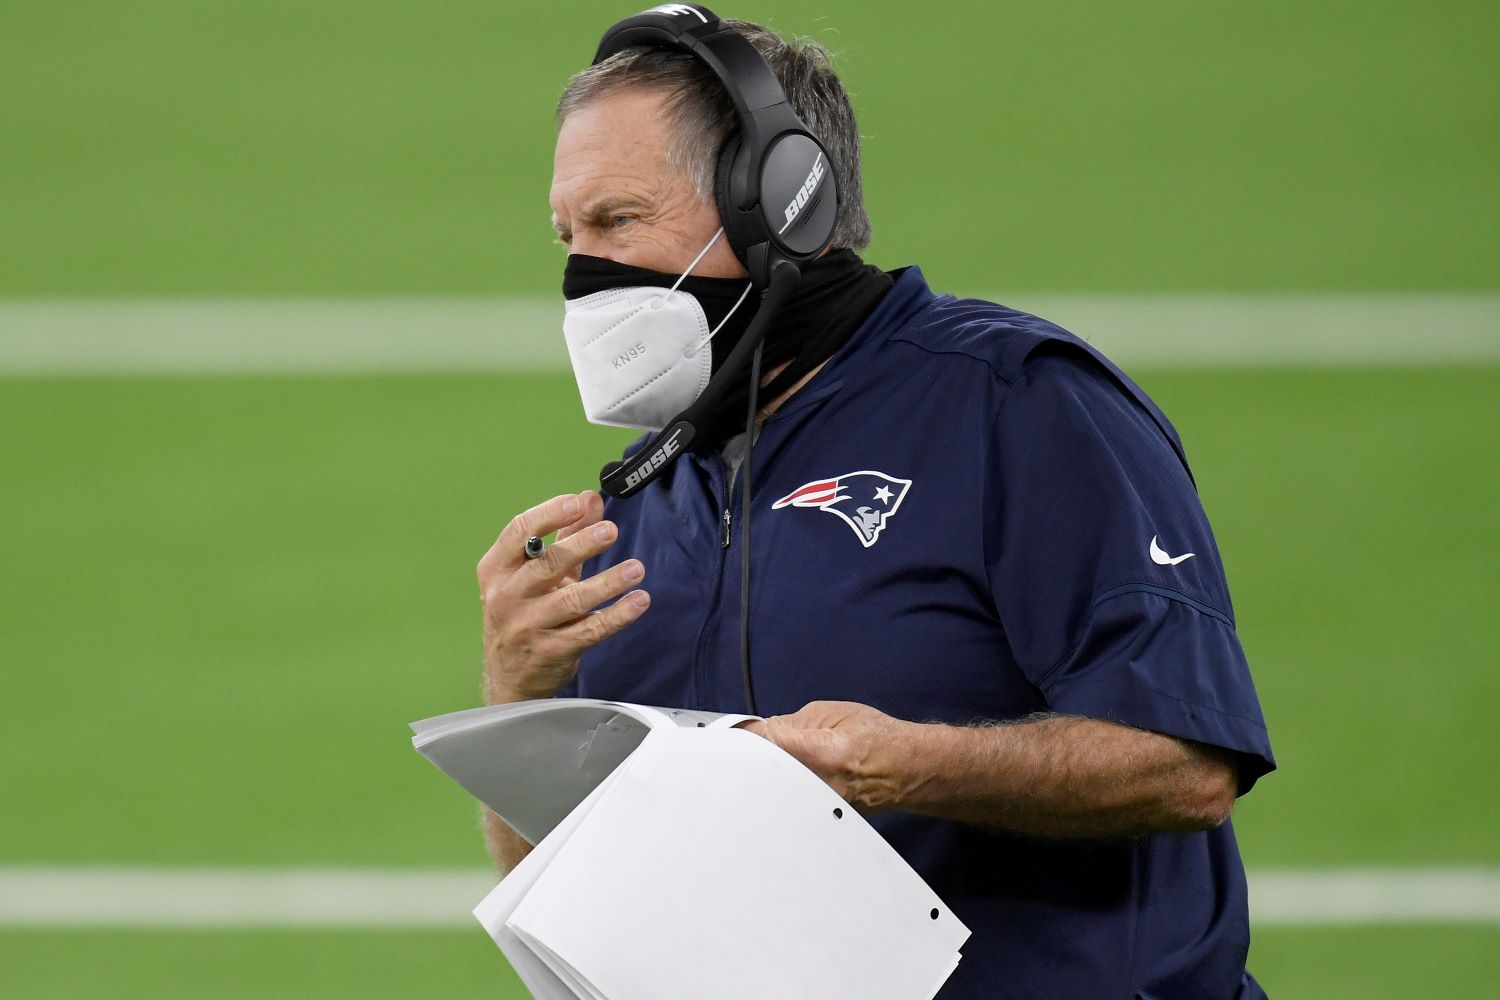 Bill Belichick got brief vindication for his worst NFL draft mistake on Thursday, as Patriots WR N'Keal Harry made several impressive catches that showed why the team used a first-round pick on him in 2019.